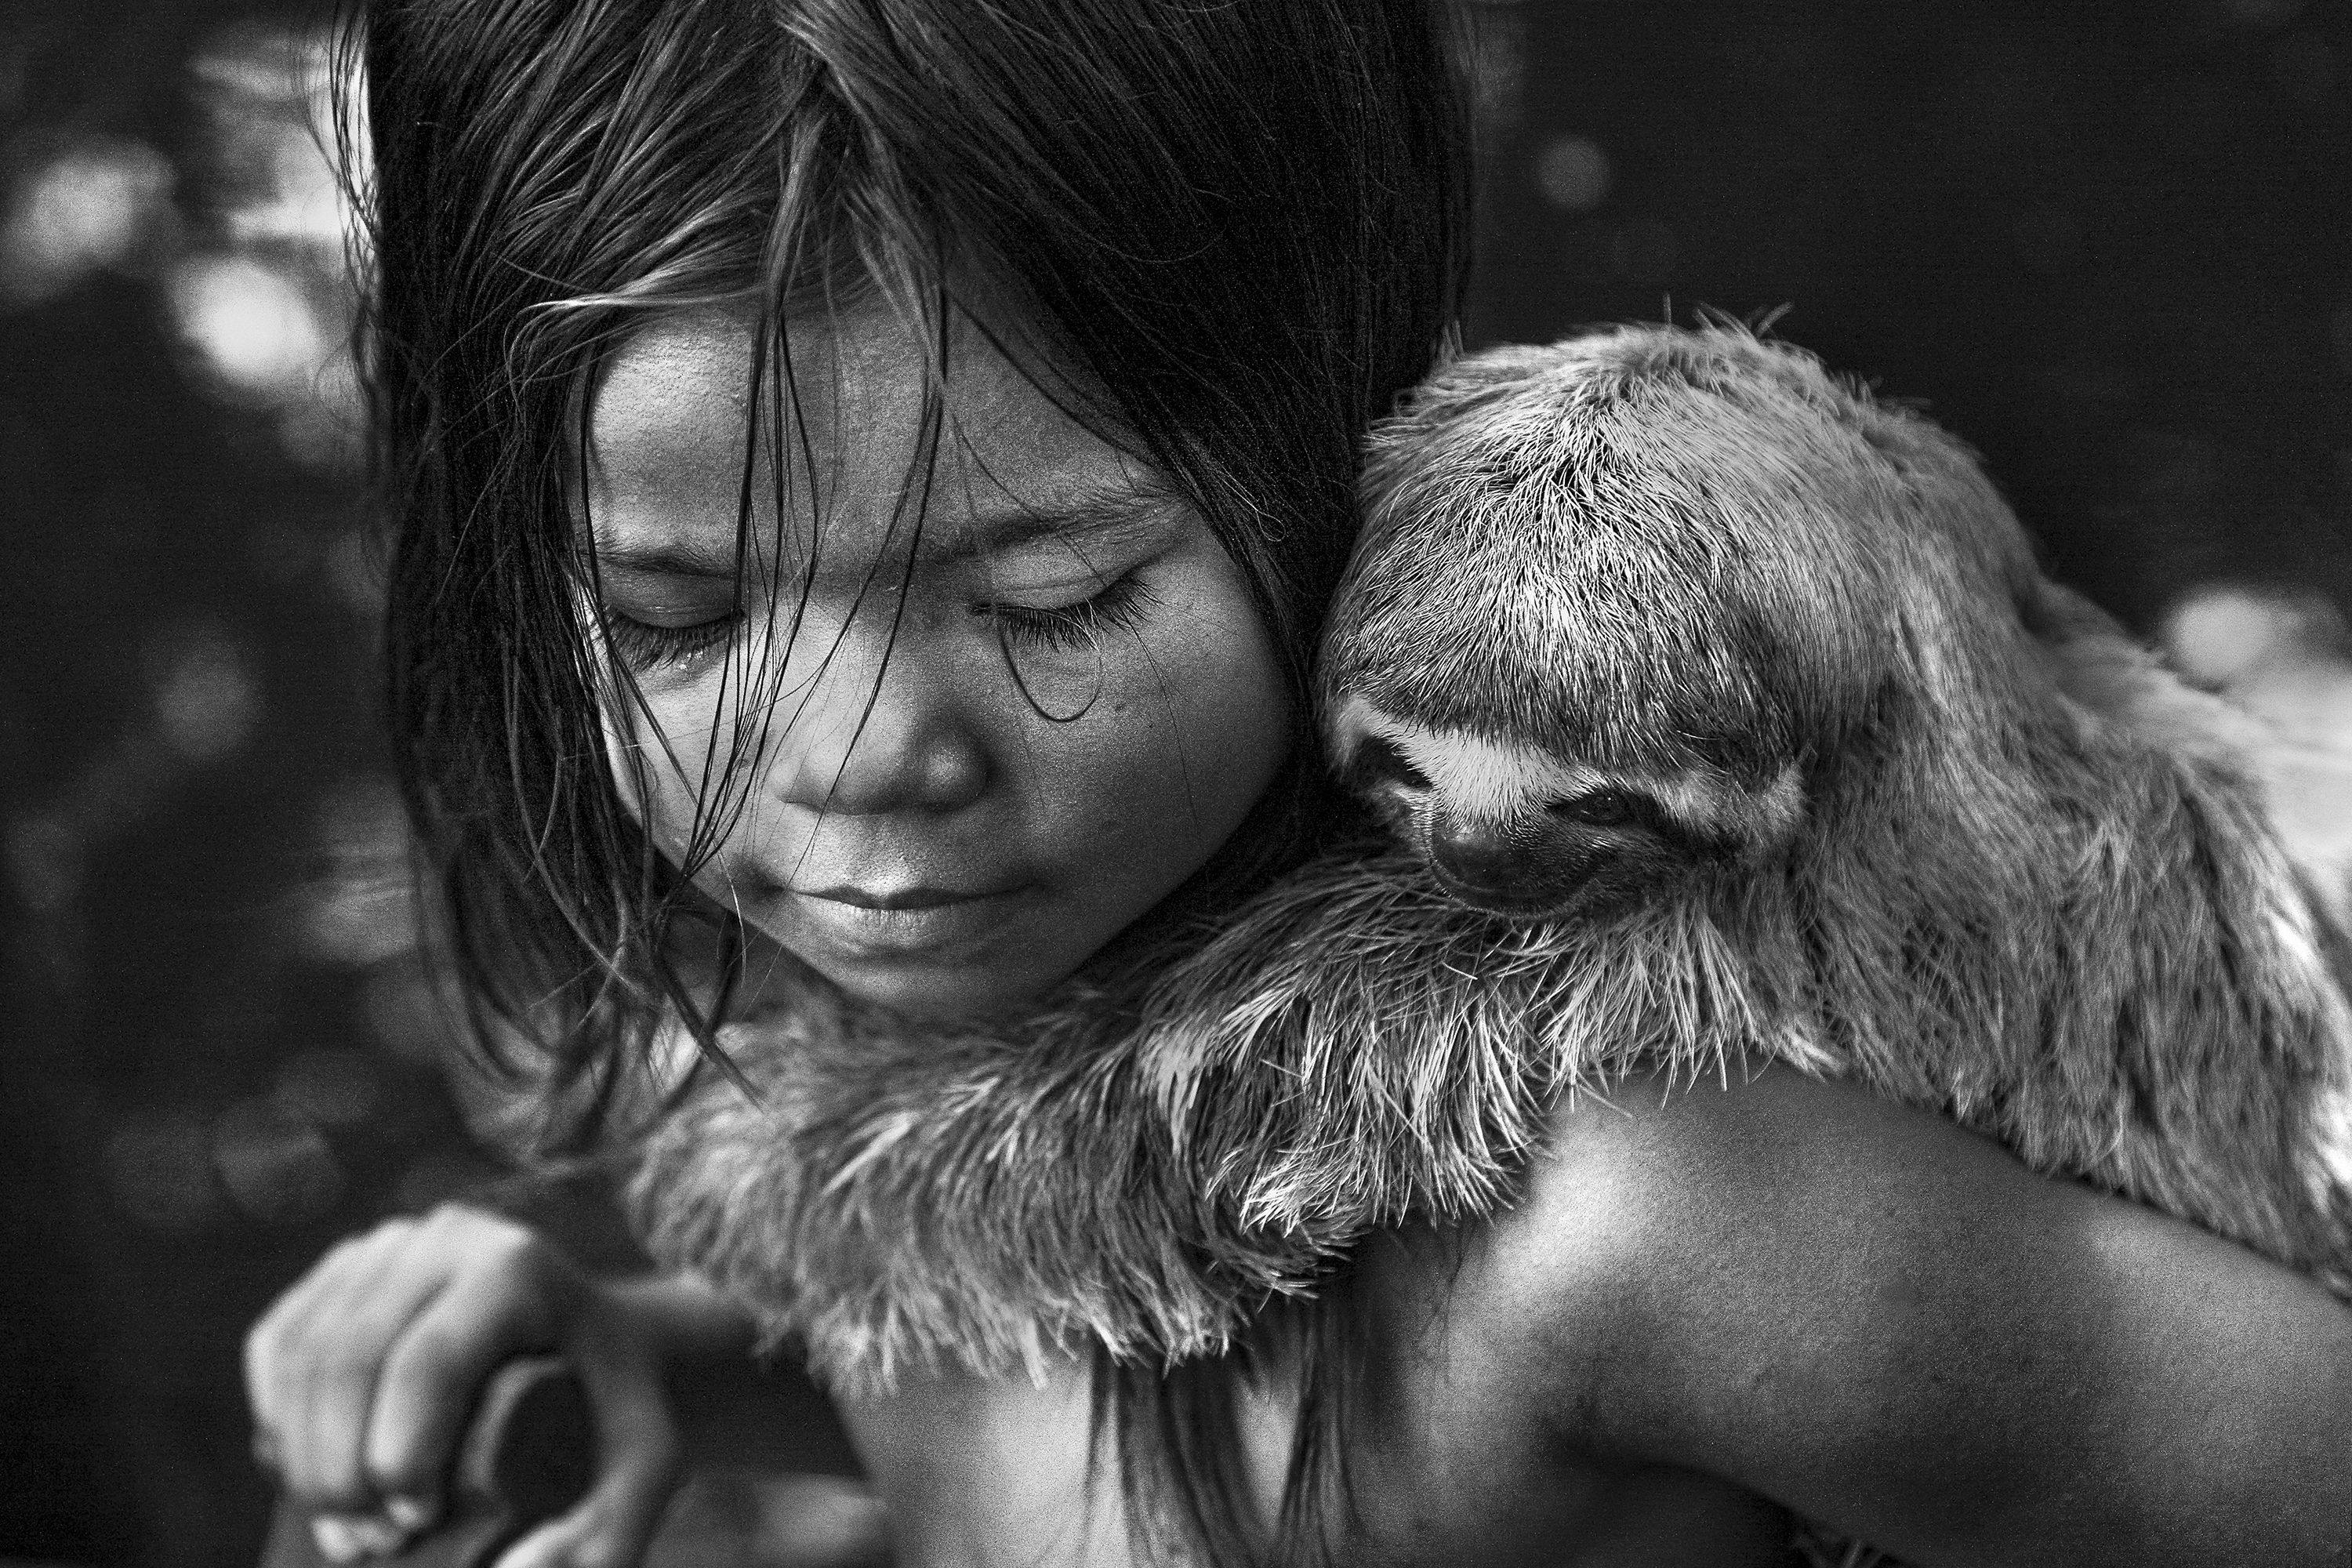 Indigenous girl with a monkey by Araquem Alcantara